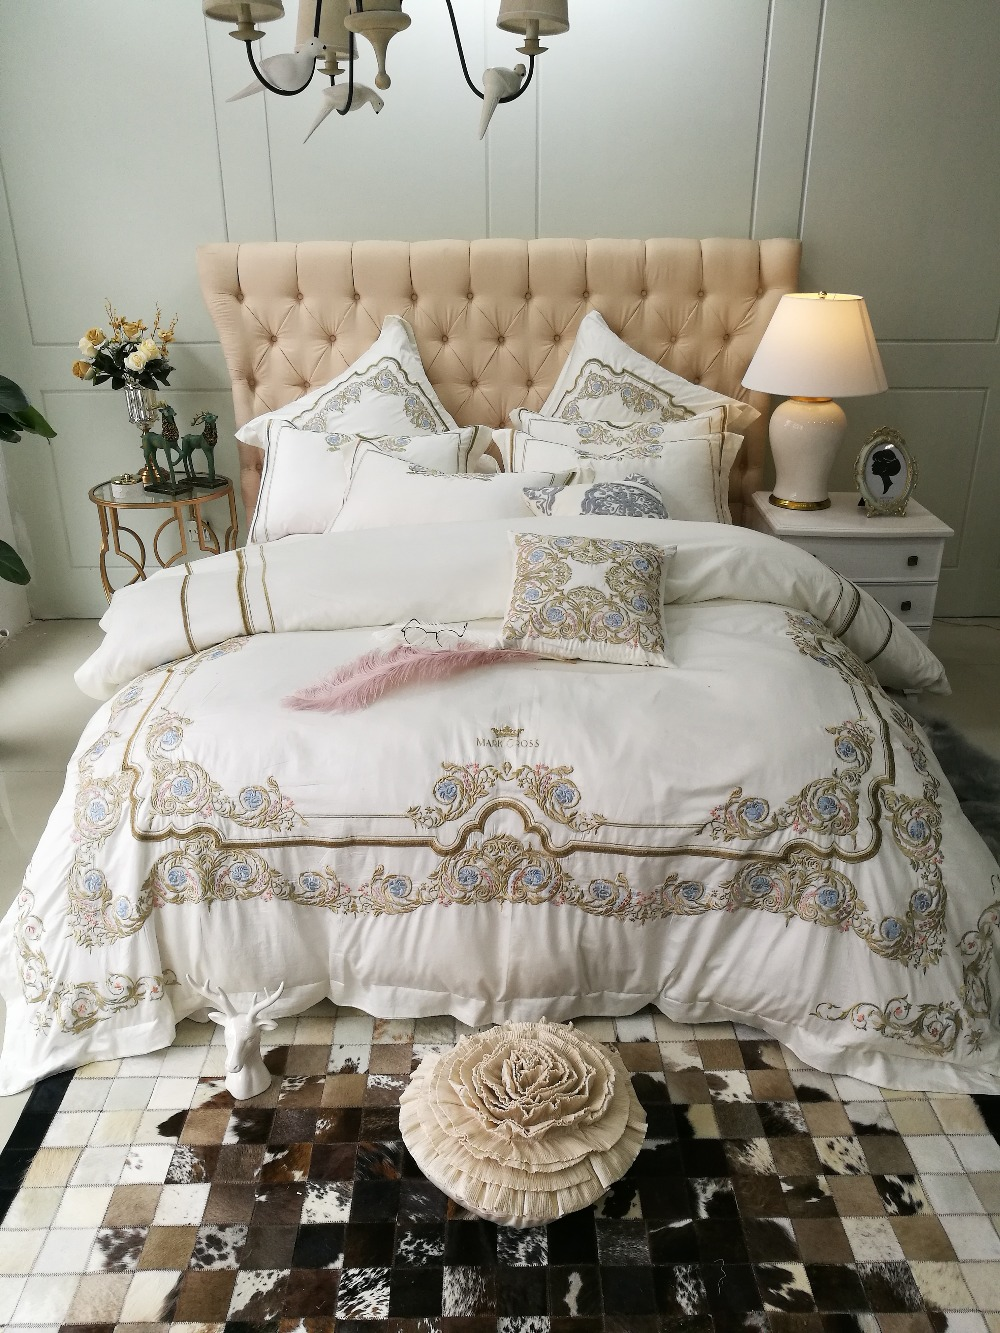 2018 Elegant embroidery Bedding Sets 4/7pcs white Bed Linens Duvet Cover Bed Sheet Pillowcases Cover Set2018 Elegant embroidery Bedding Sets 4/7pcs white Bed Linens Duvet Cover Bed Sheet Pillowcases Cover Set